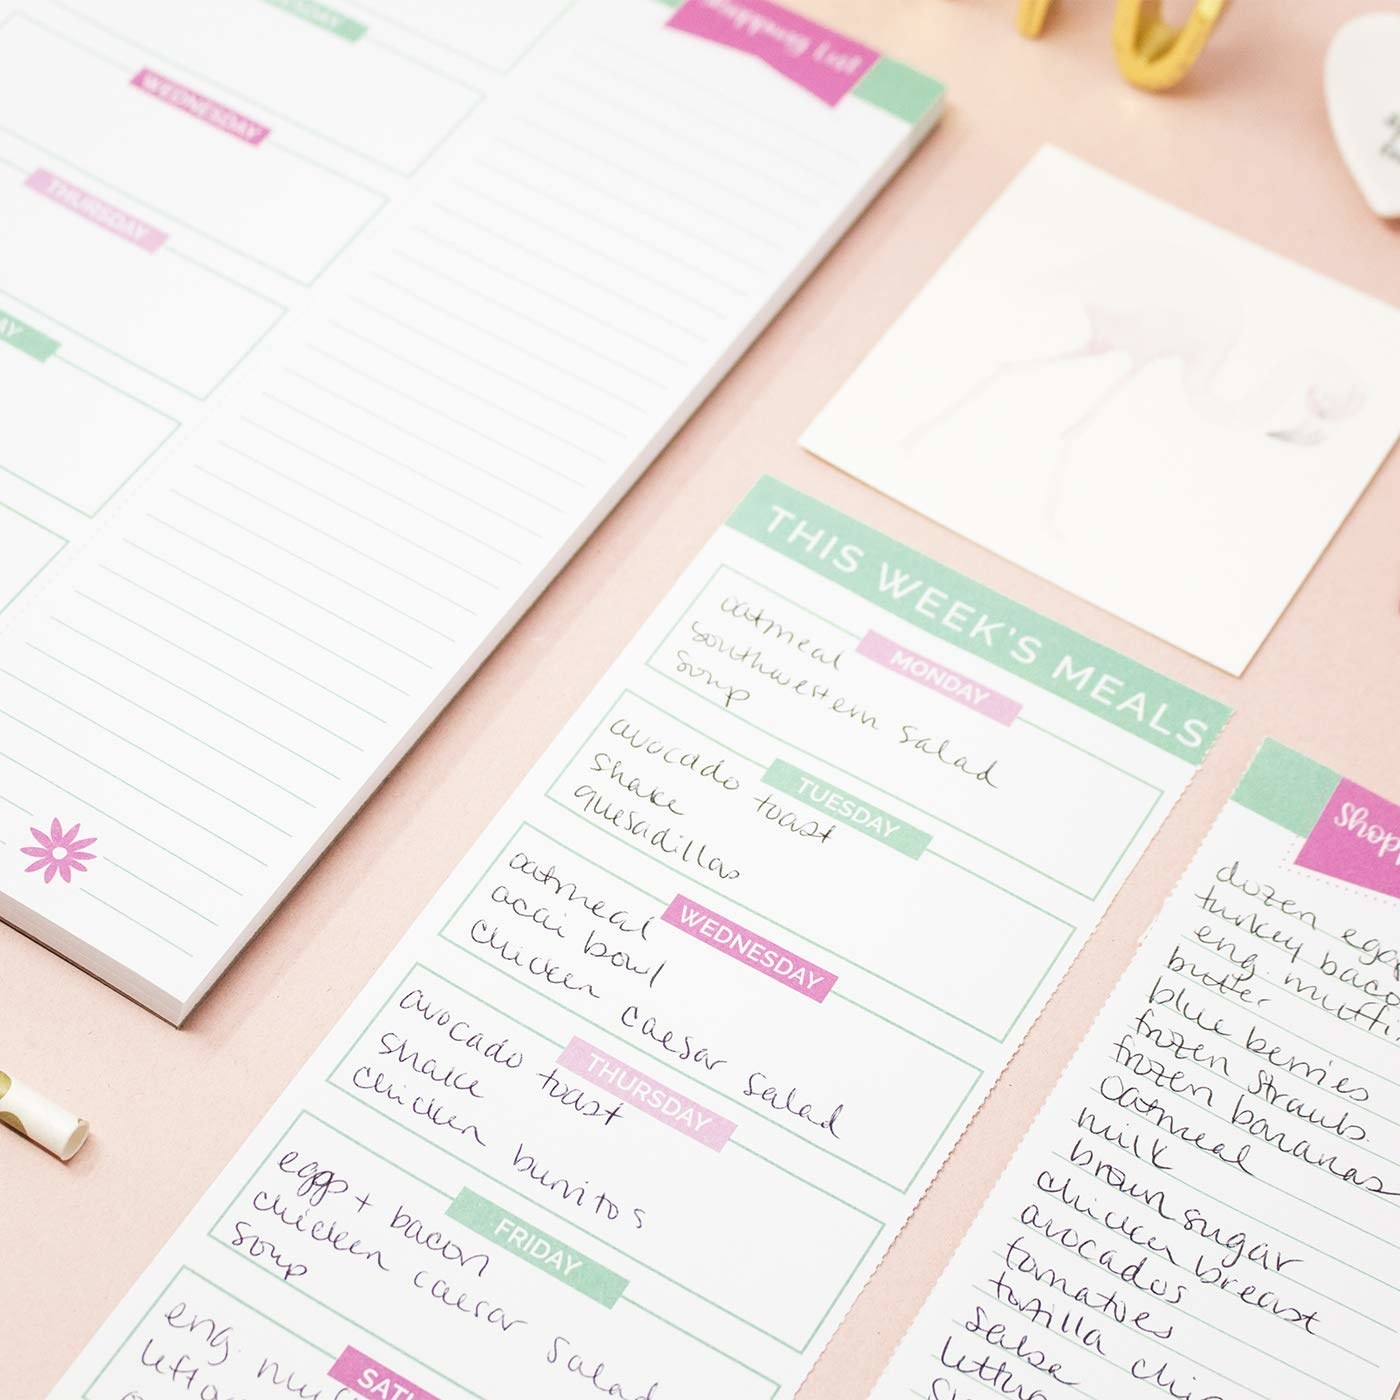 The floral-themed pad, featuring planning area for each day of the week as well as a shopping list